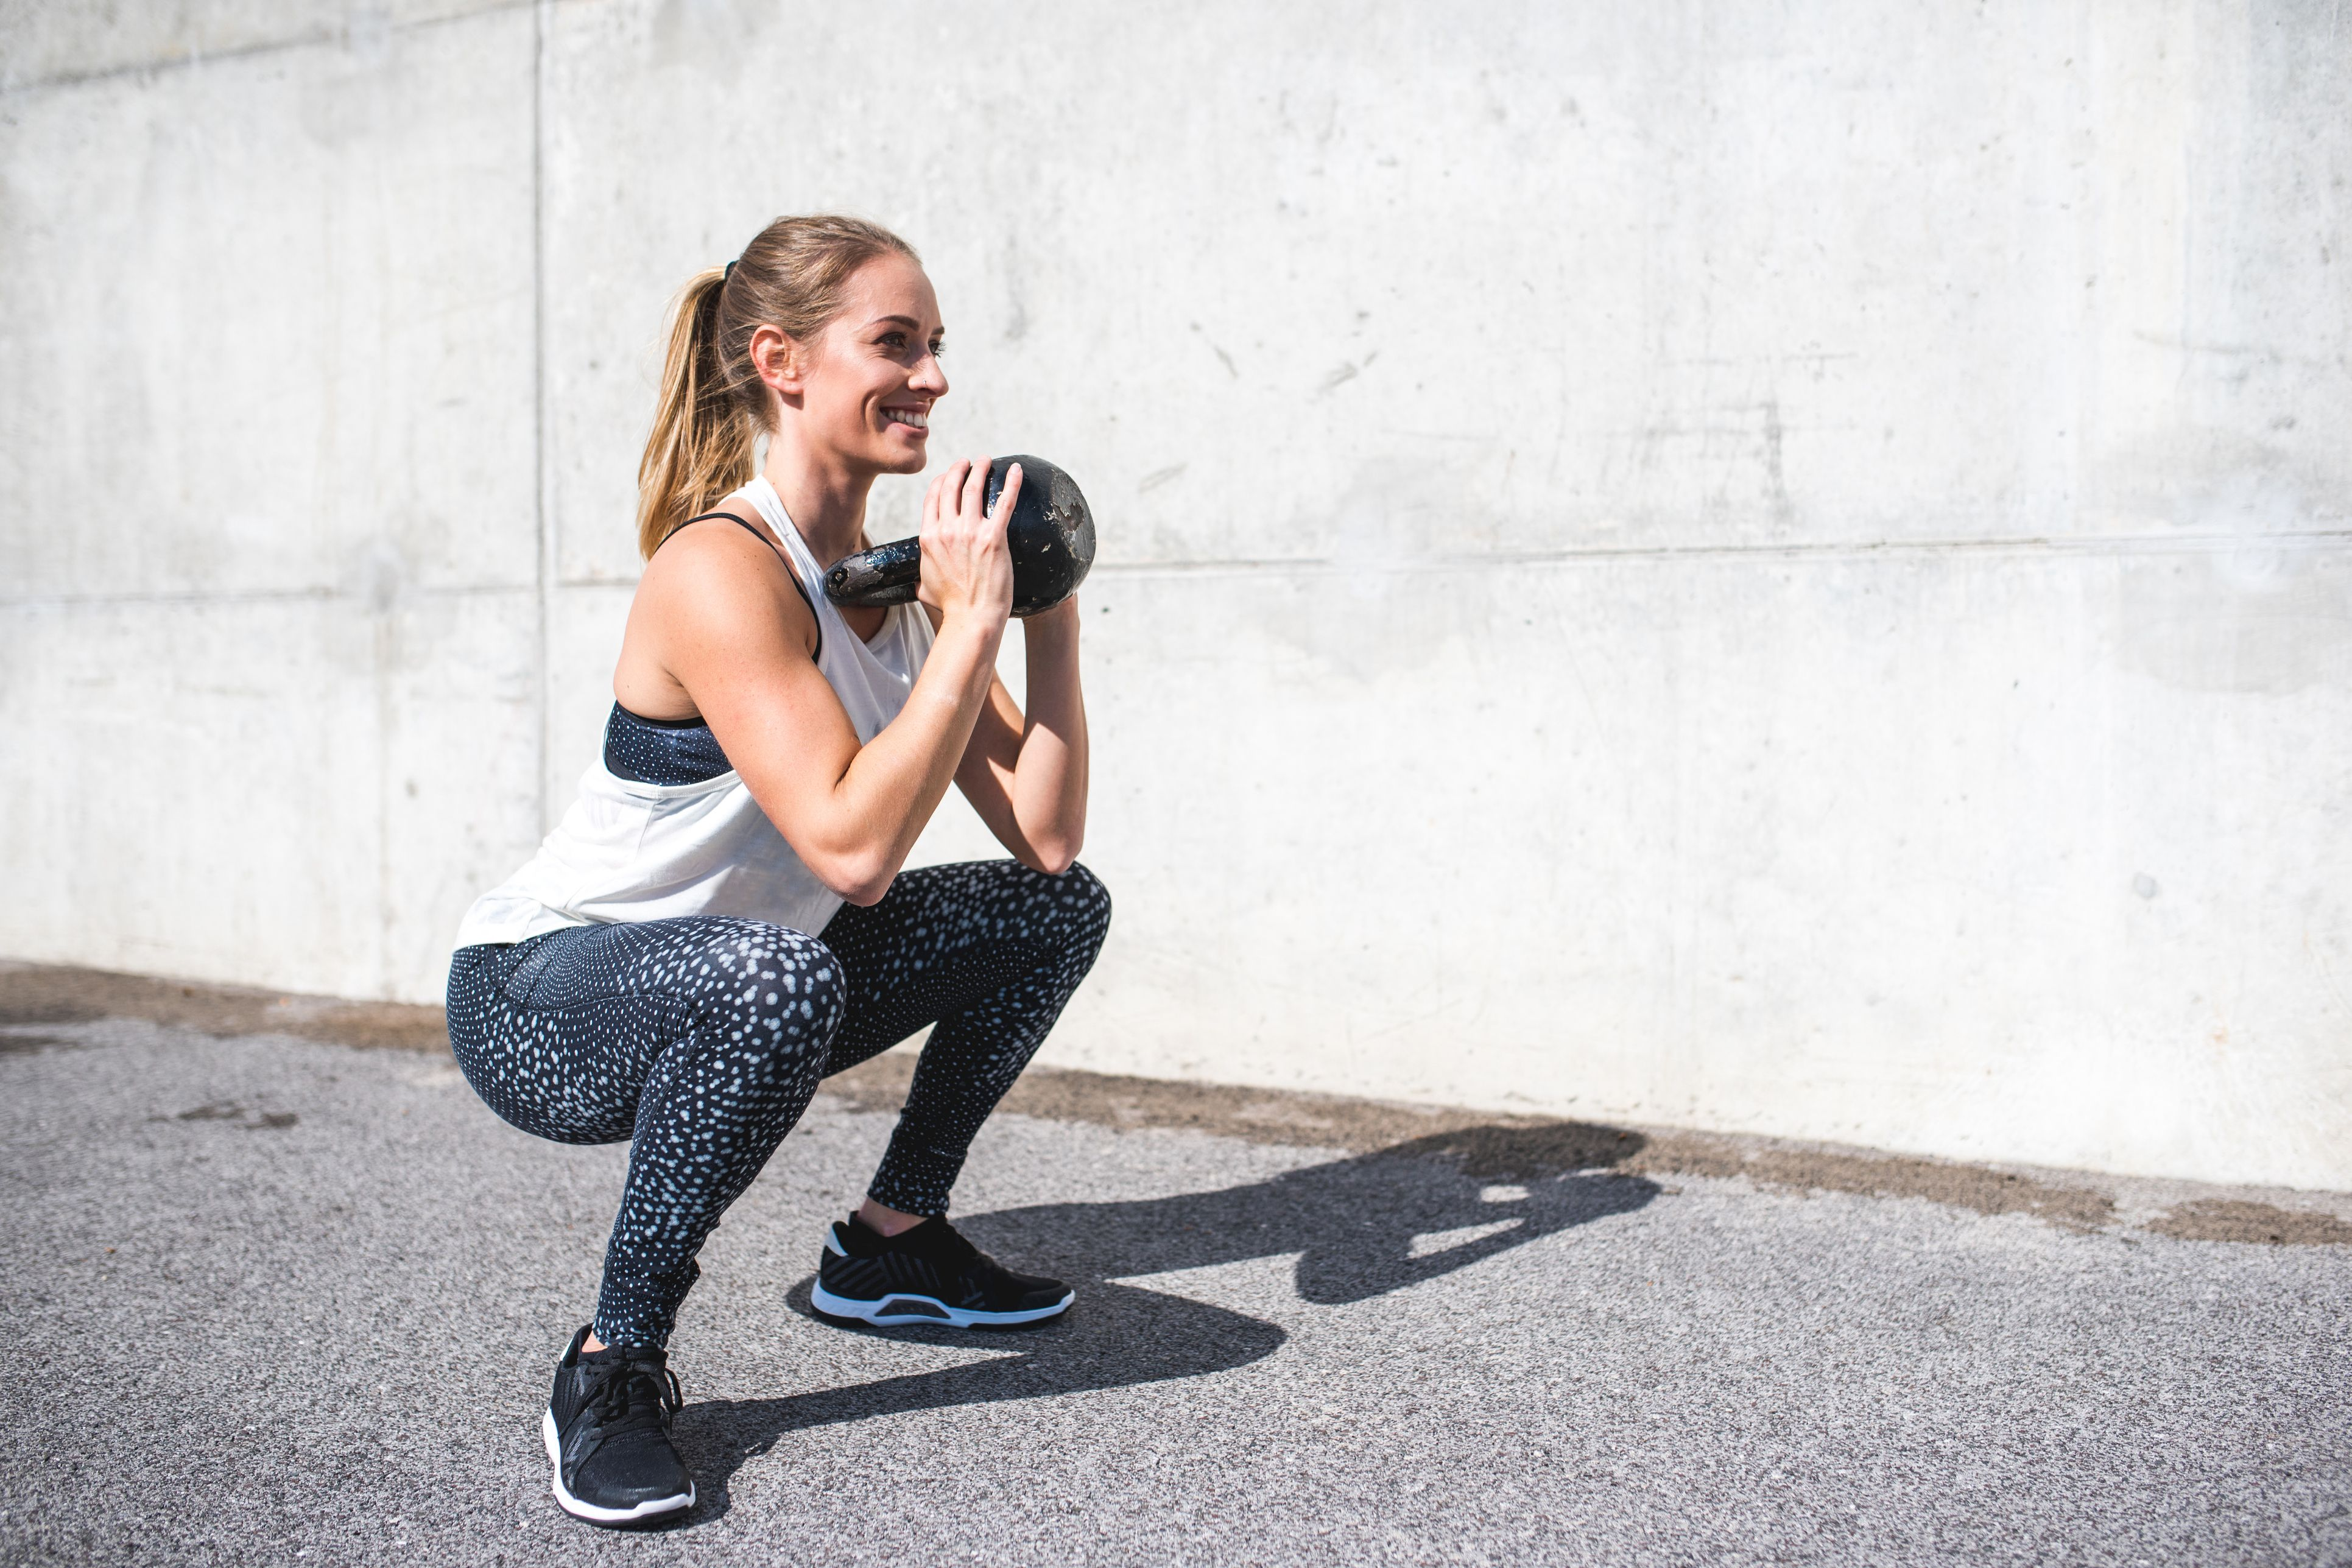 Woman doing squats with a kettlebell